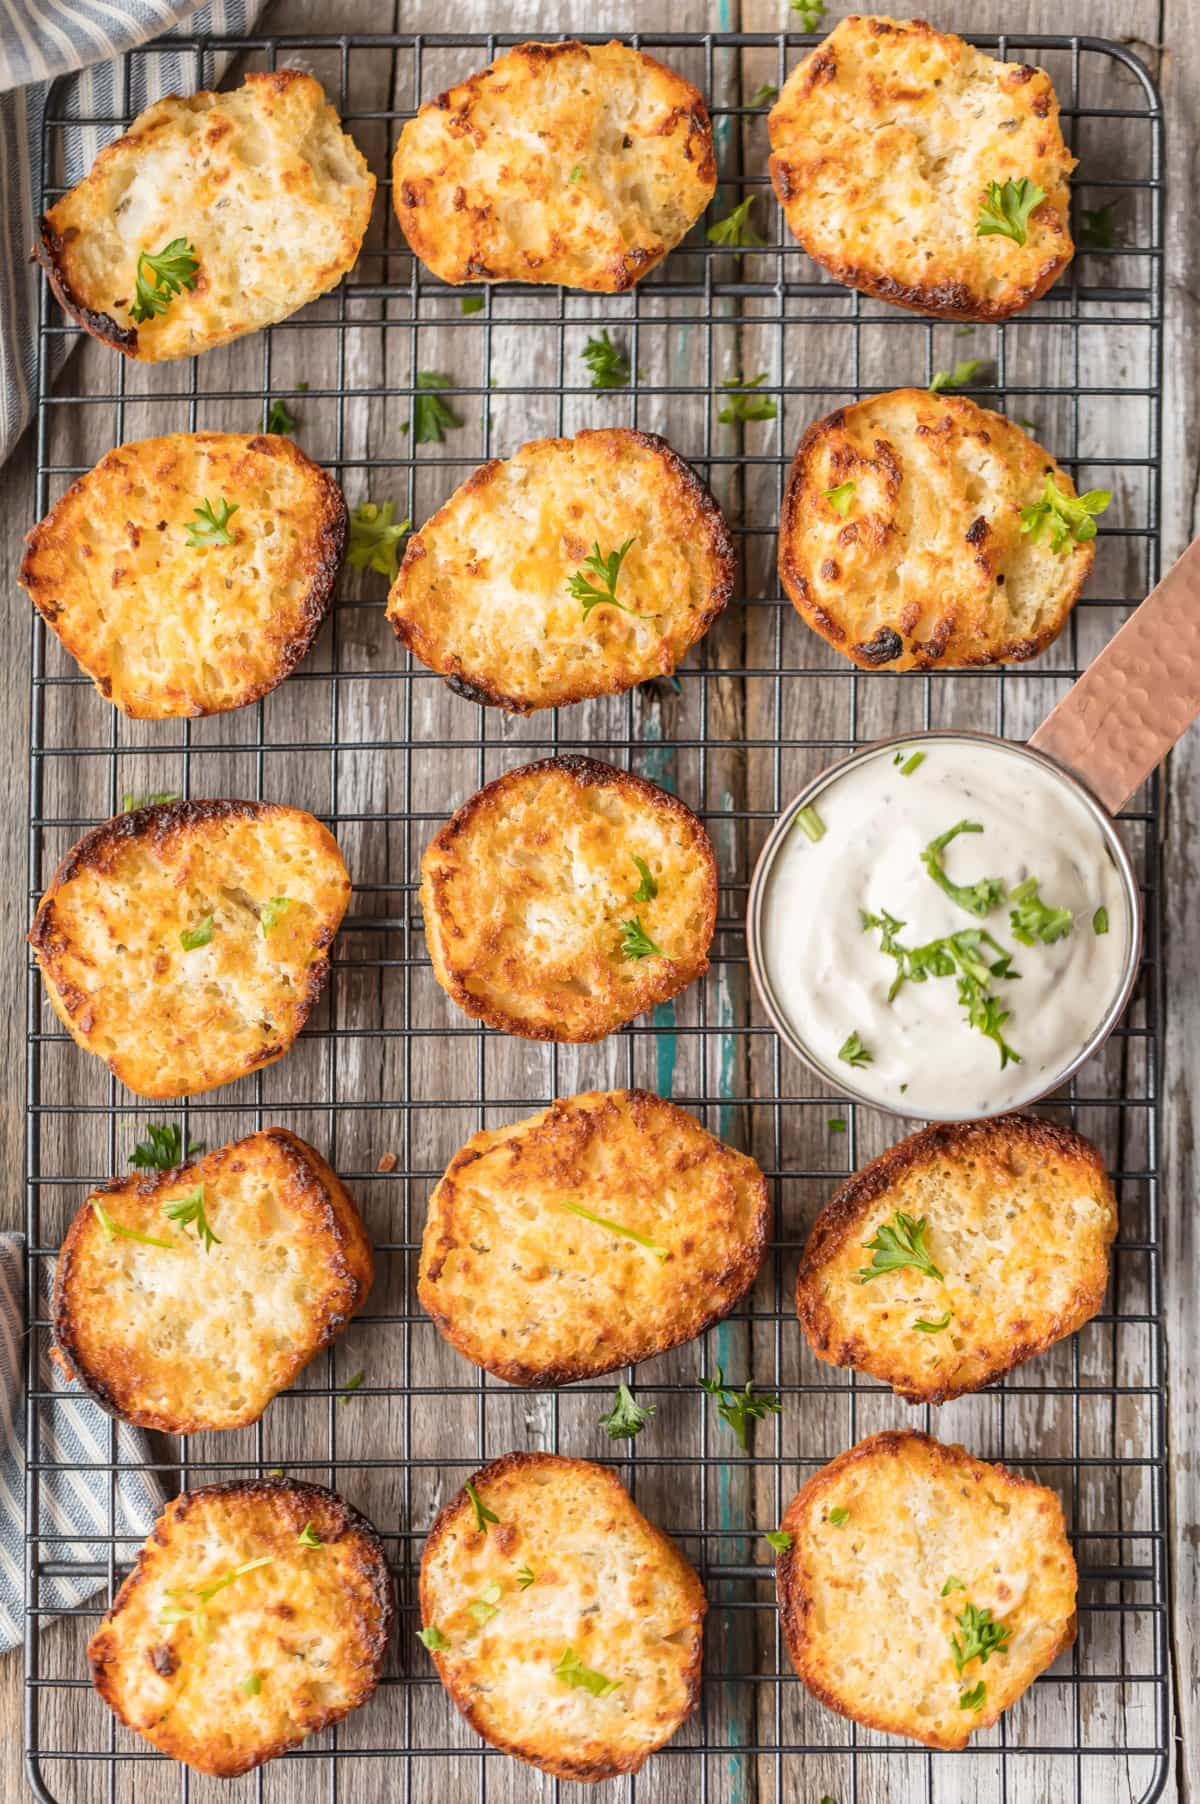 These EASY RANCH DIP BISCUITS are the ultimate savory side. These Ranch Biscuits are oh so easy and oh so tasty. Once you make them, you'll be making them for years!